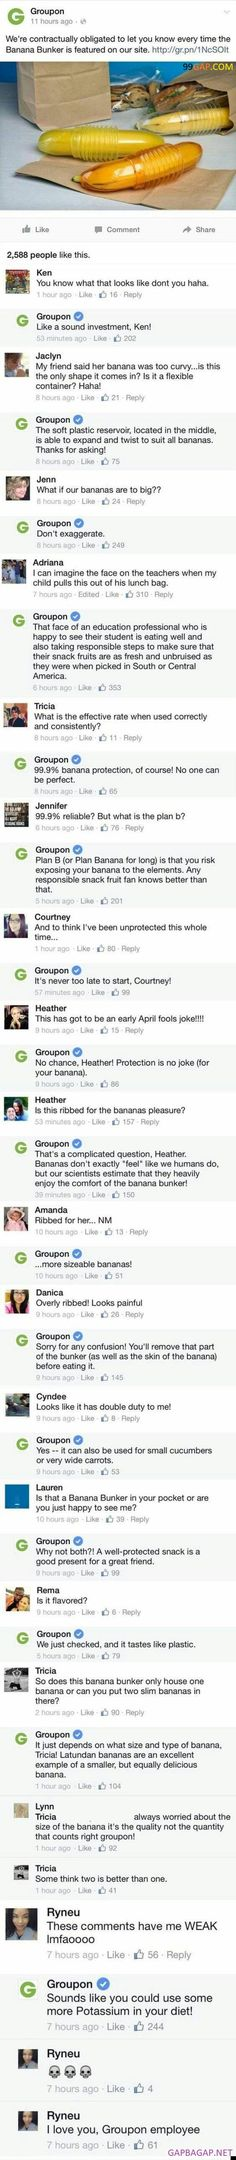 Hilarious Tweets Collection About Banana